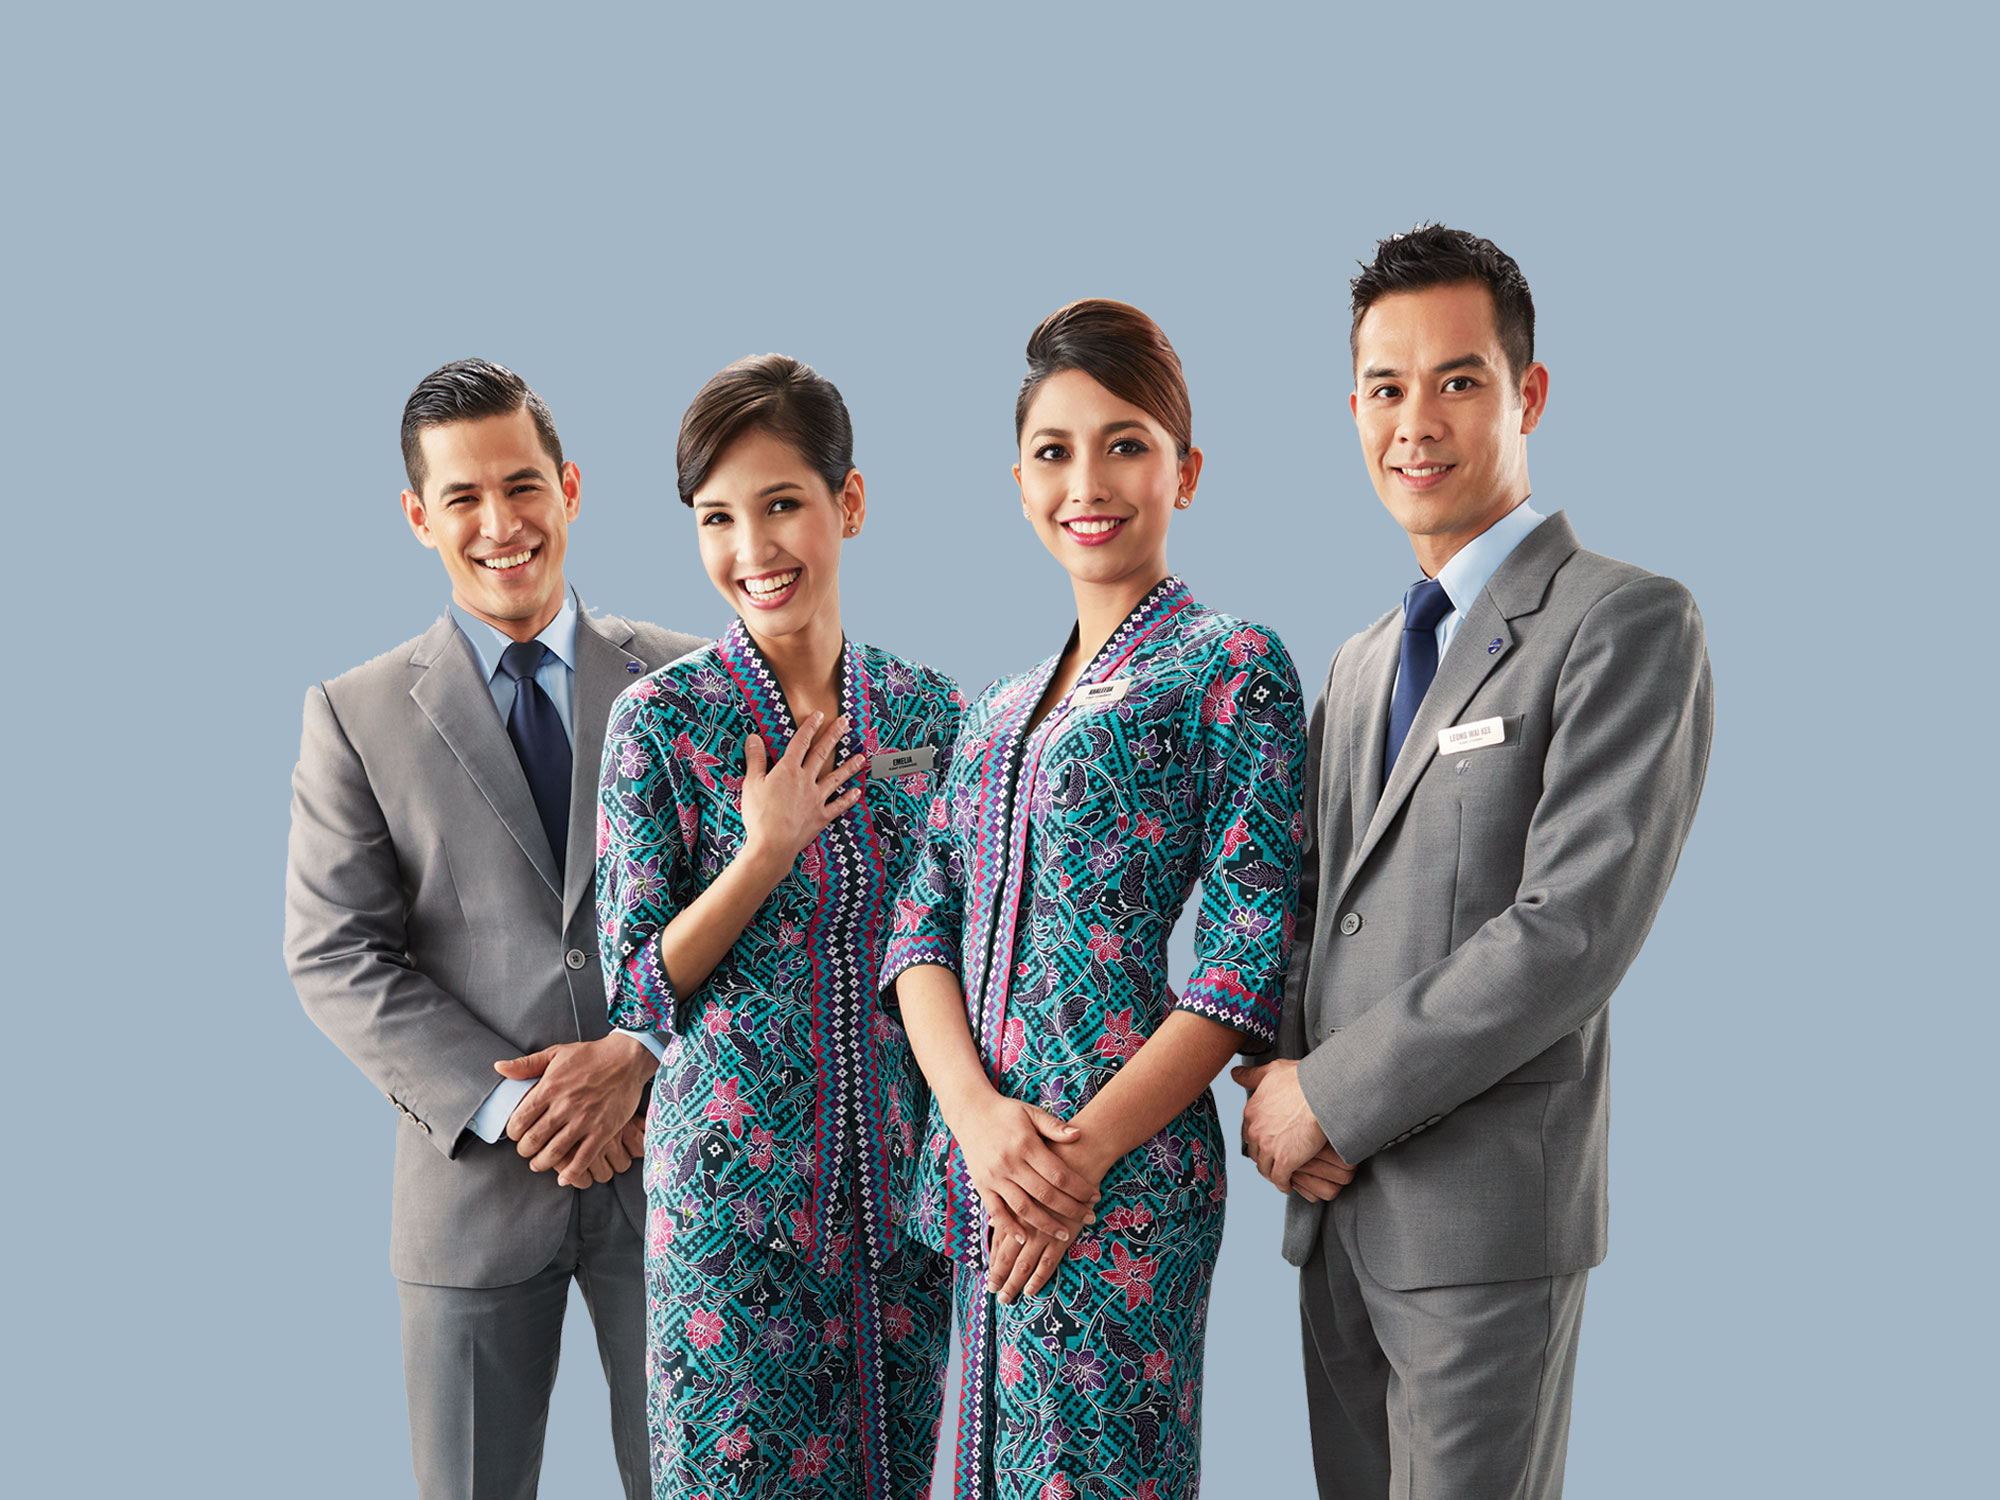 Image from Malaysia Airlines